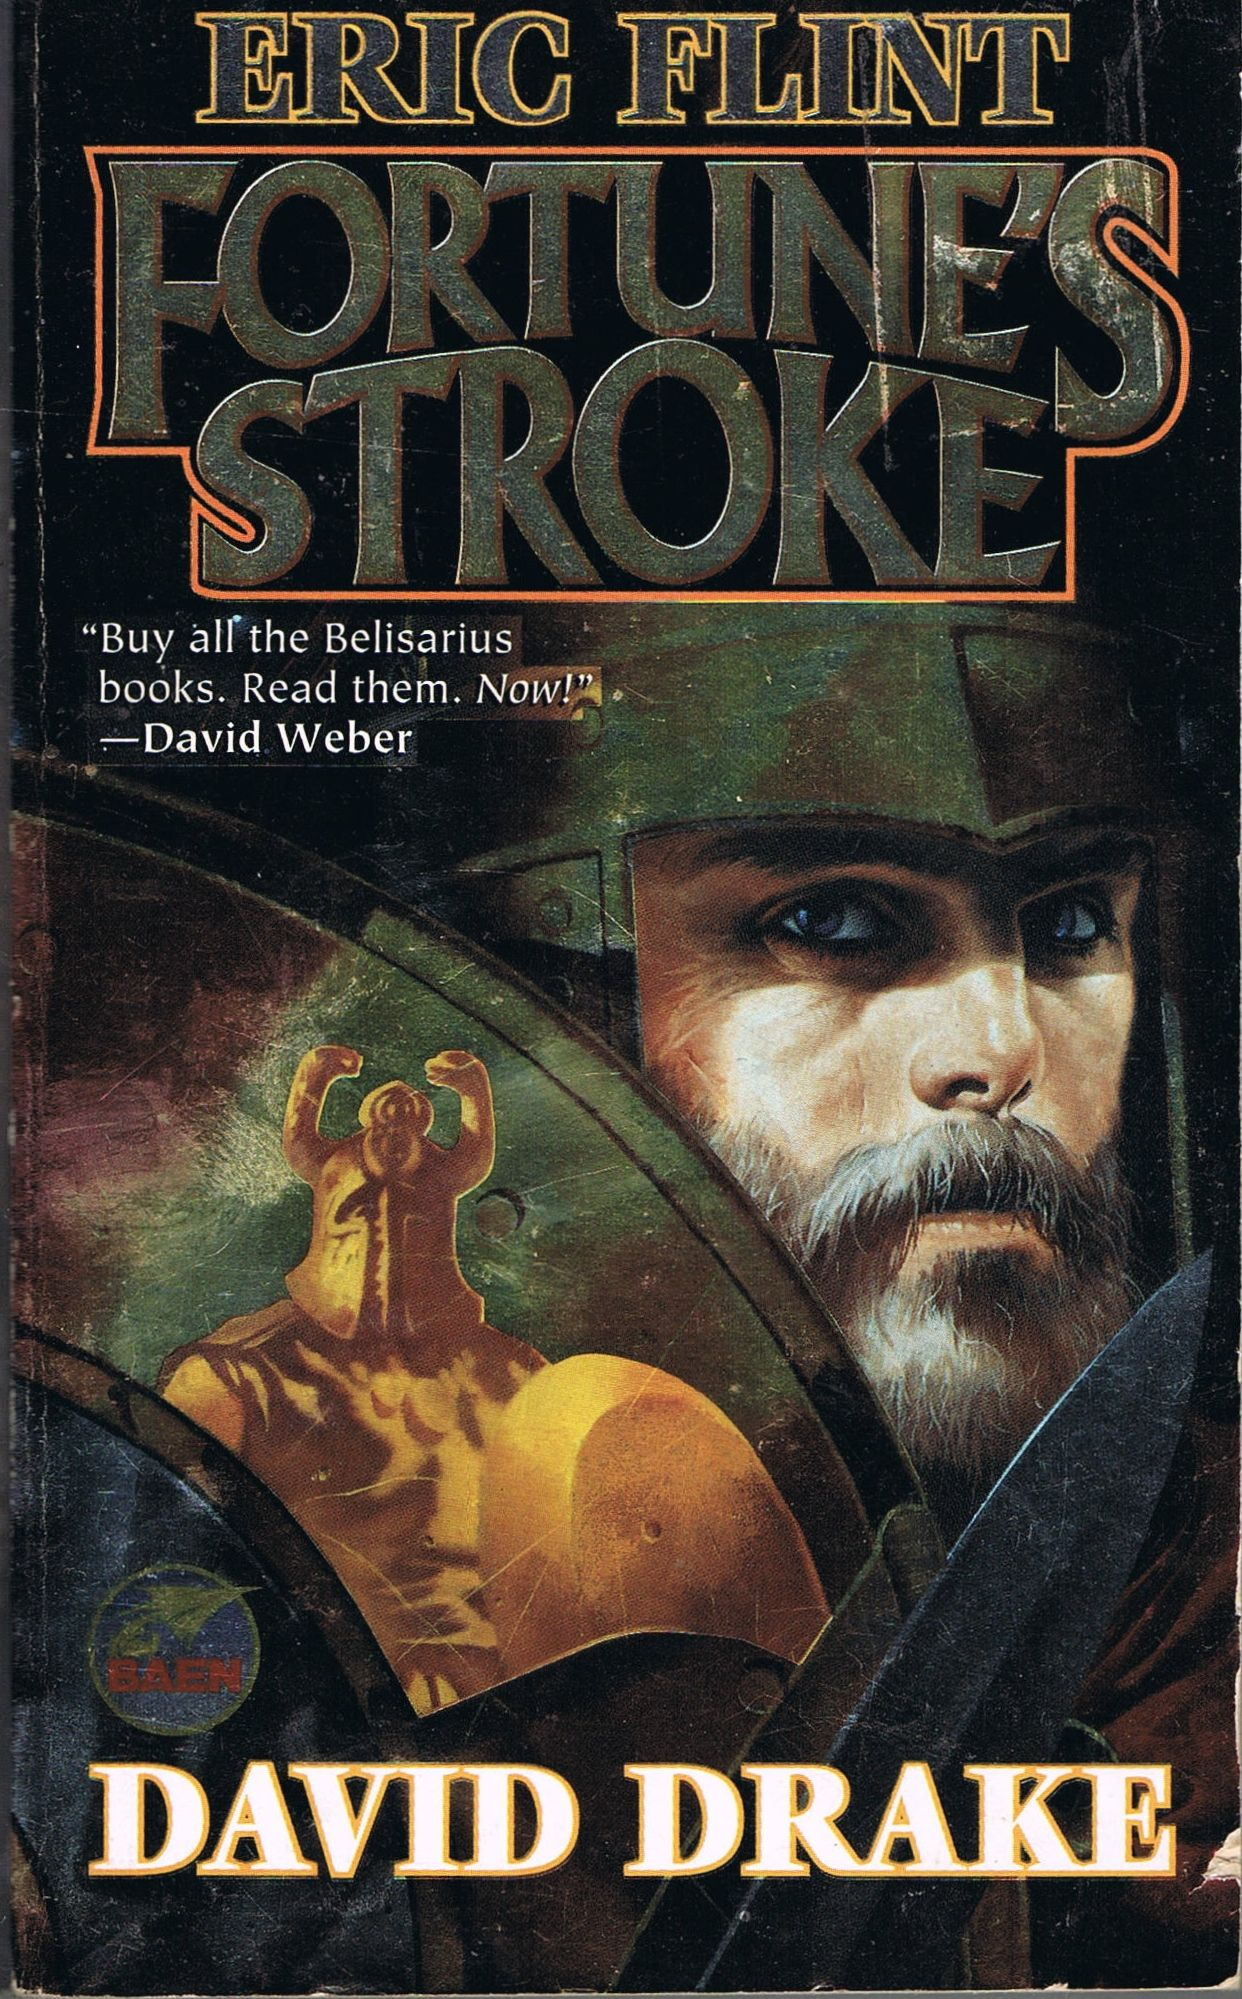 Fortune's Stroke (2000) by Eric Flint and David Drake. Fourth in the Belisarius alternate history military series. Flint and Drake handle the interweaving of the different story lines very well. There are armies, battles, sieges, terrorist attacks and guerrilla warfare spread over four countries; plus navy battles and weddings, but the story is easy to follow. Finished 29th Nov 2013, bought second hand this year.